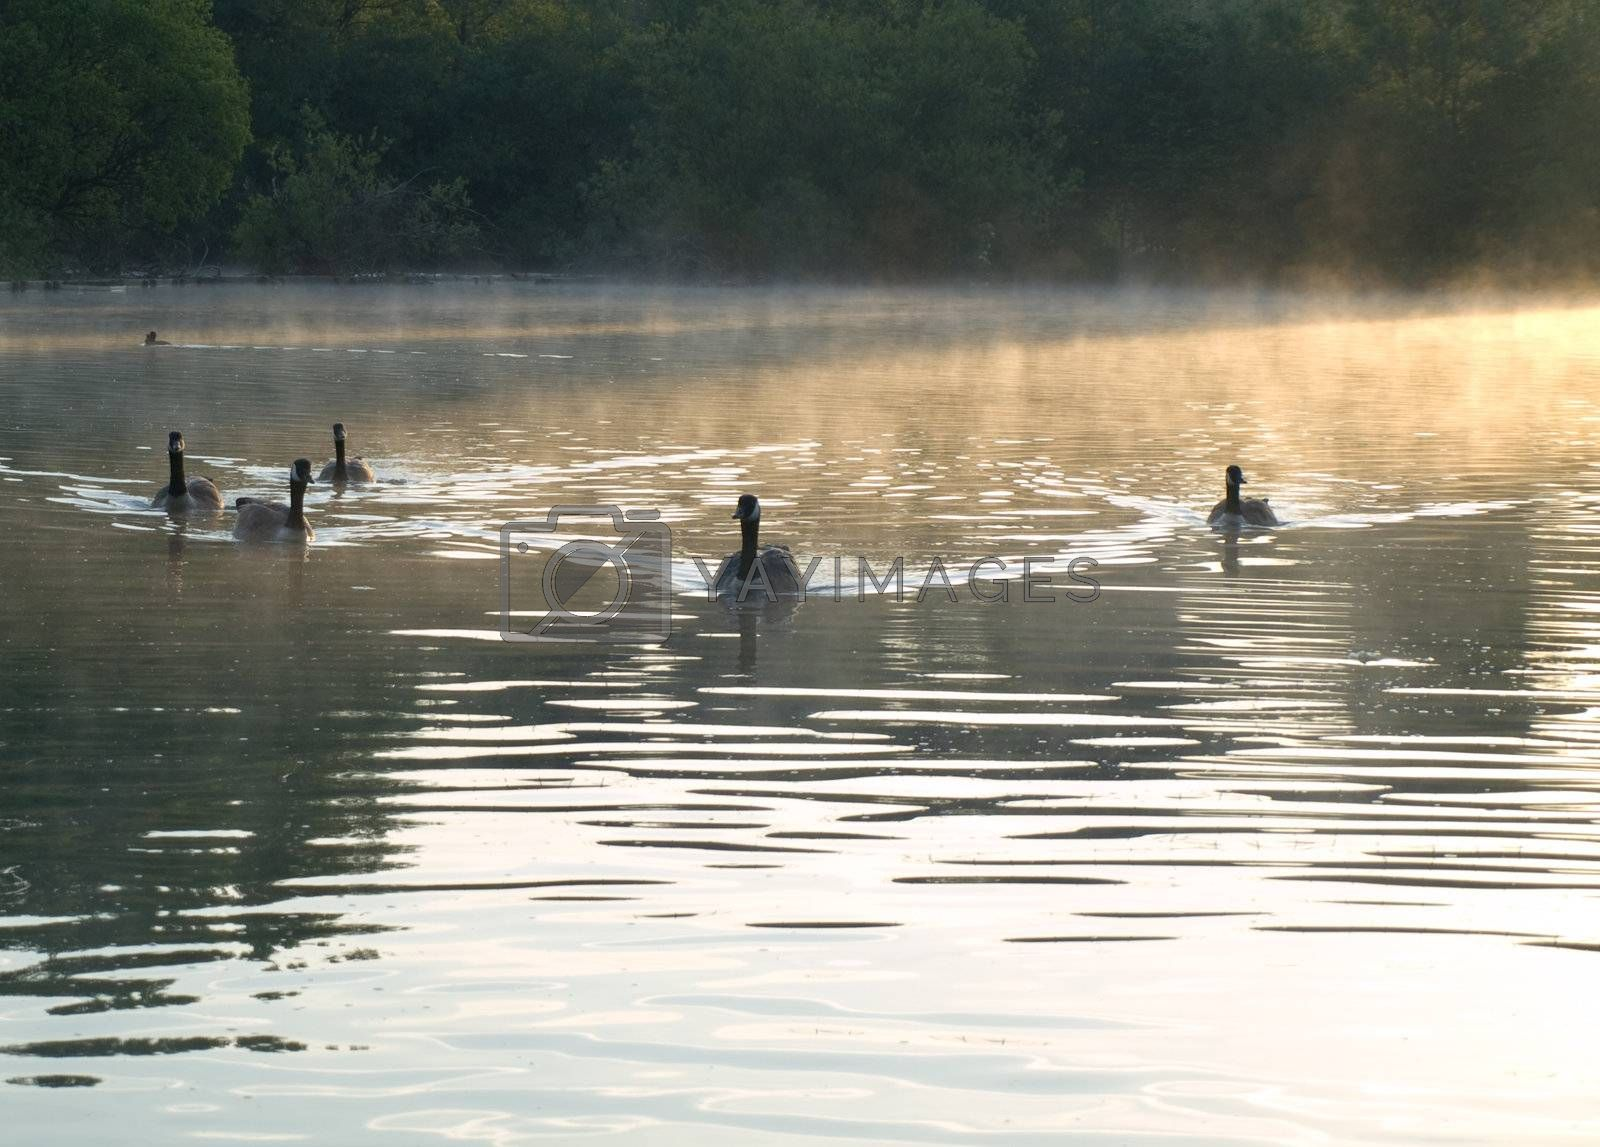 Ducks and Geese on a Misty English Pond Early in The Morning